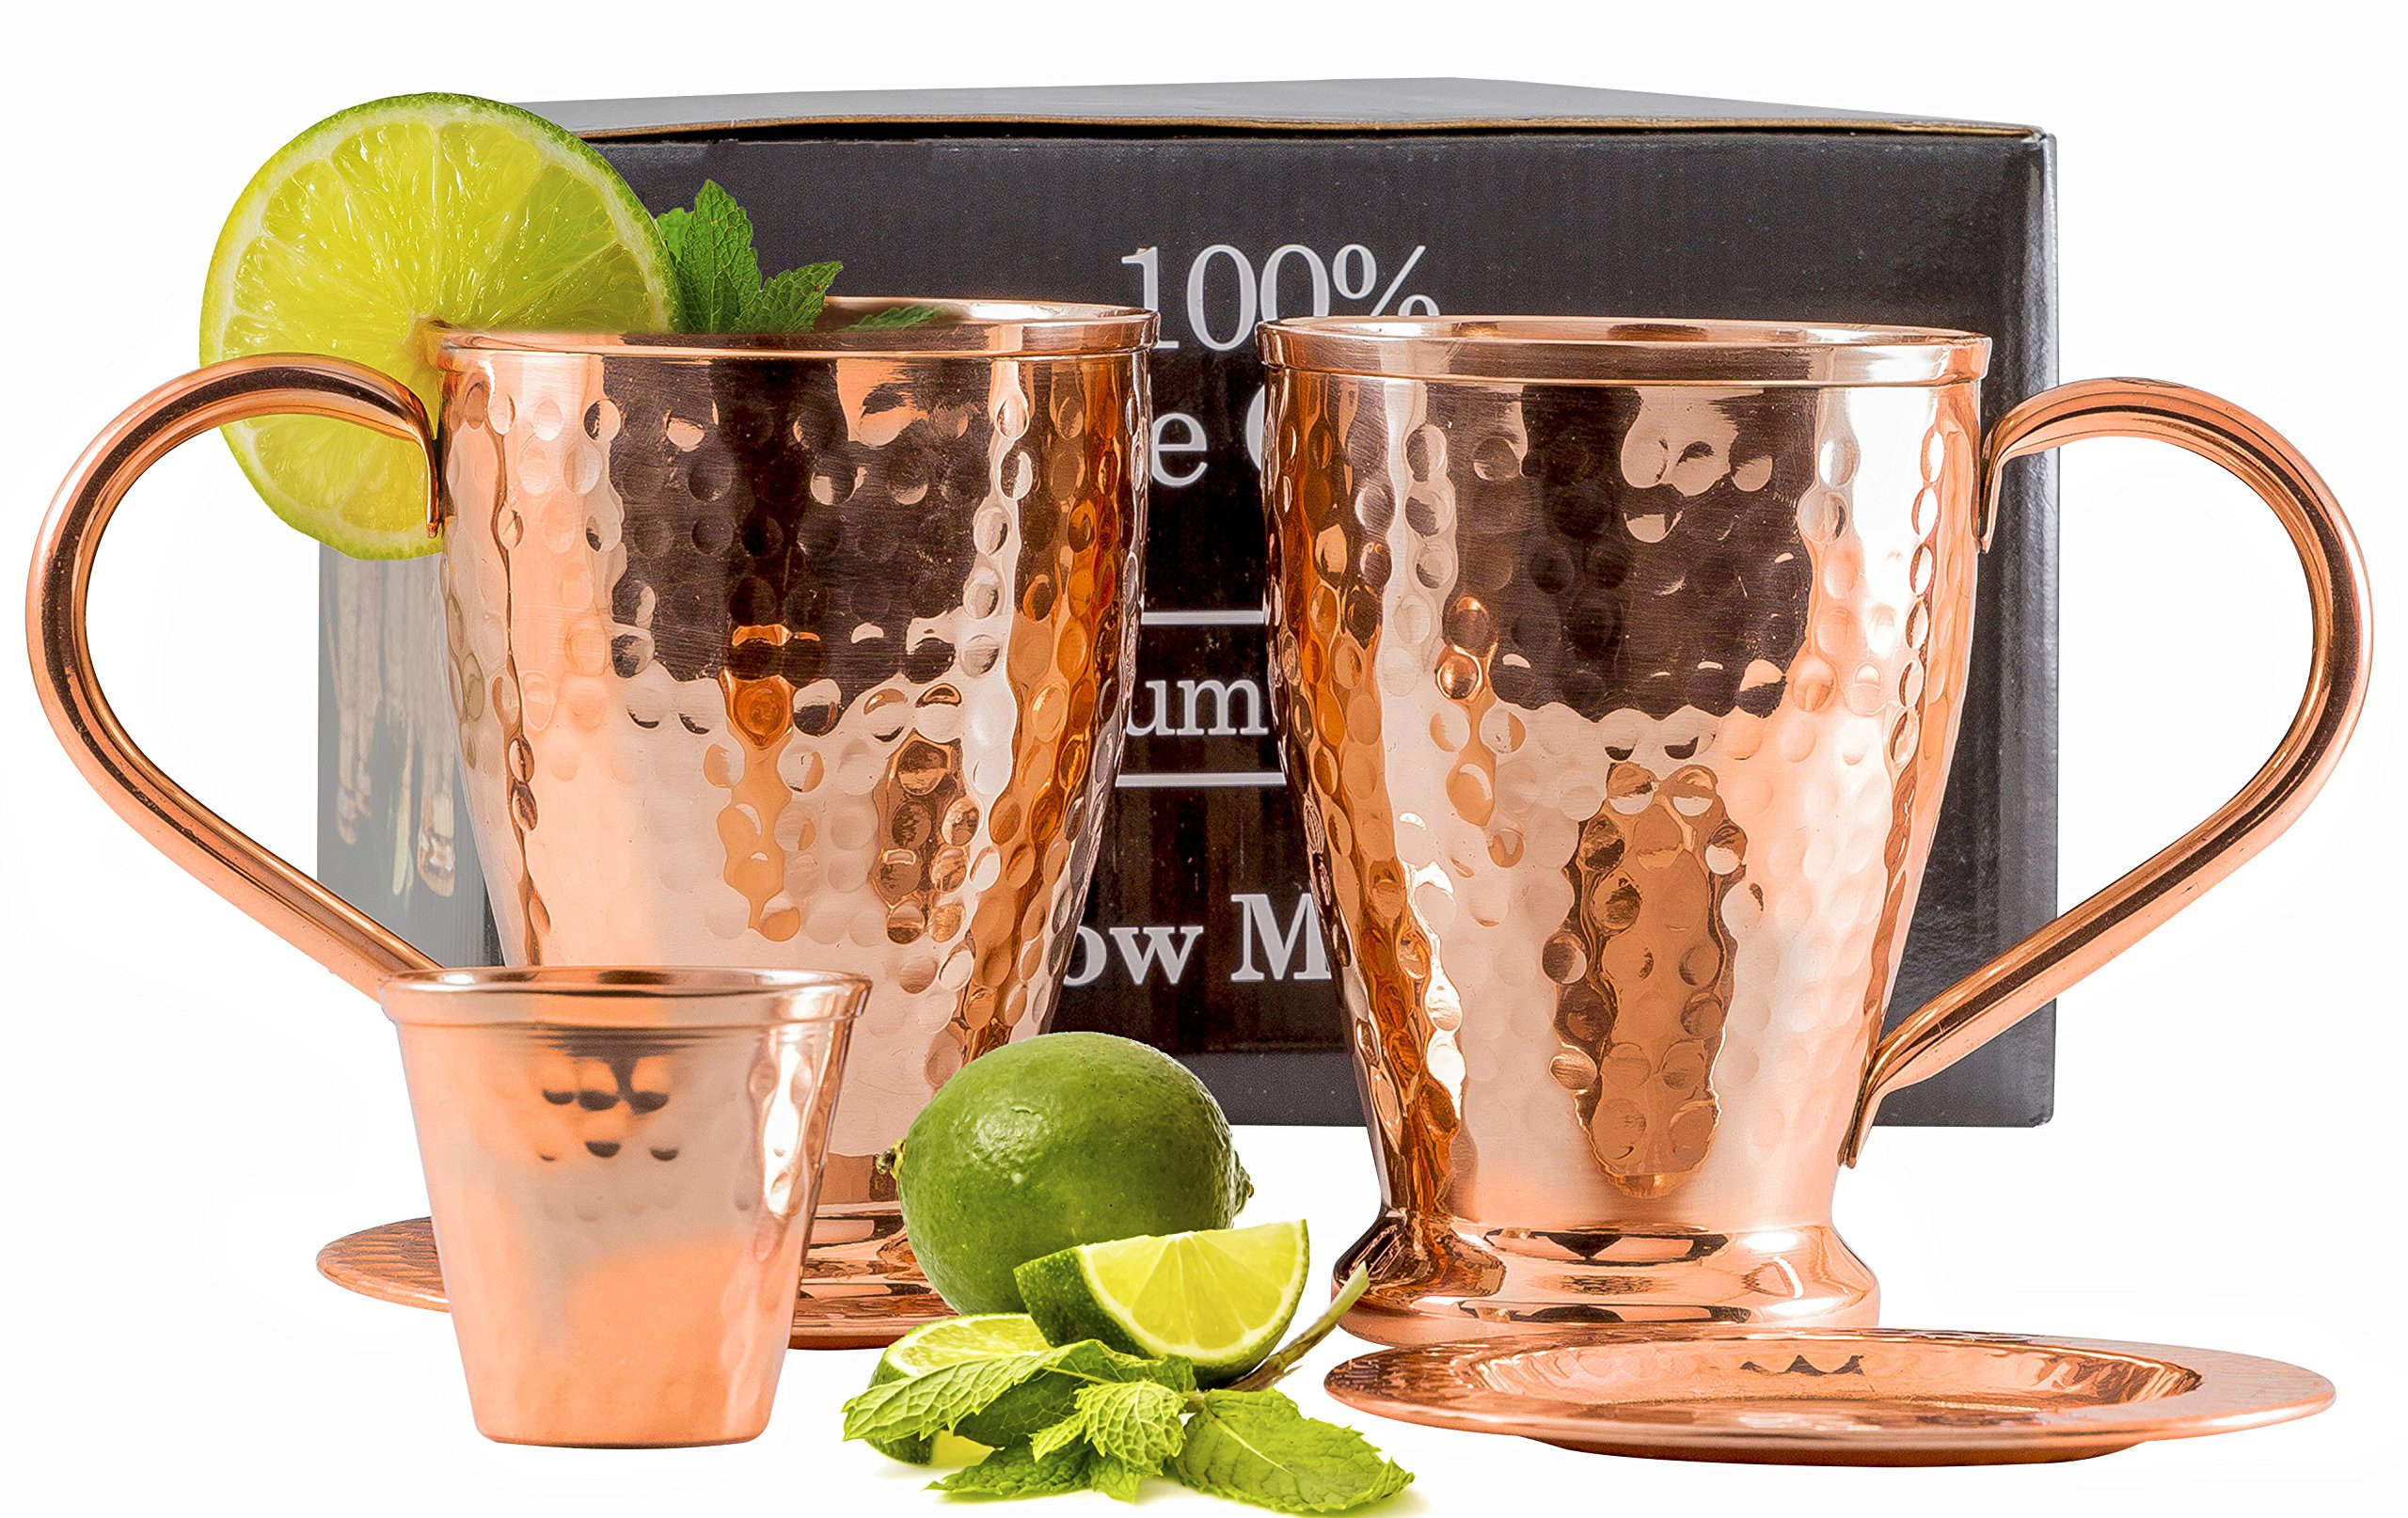 Moscow Mule Copper Mugs Set | Pure Copper Coasters (2) for Cocktails & Moscow Mules- Kamojo Mugs Gift Set of 2